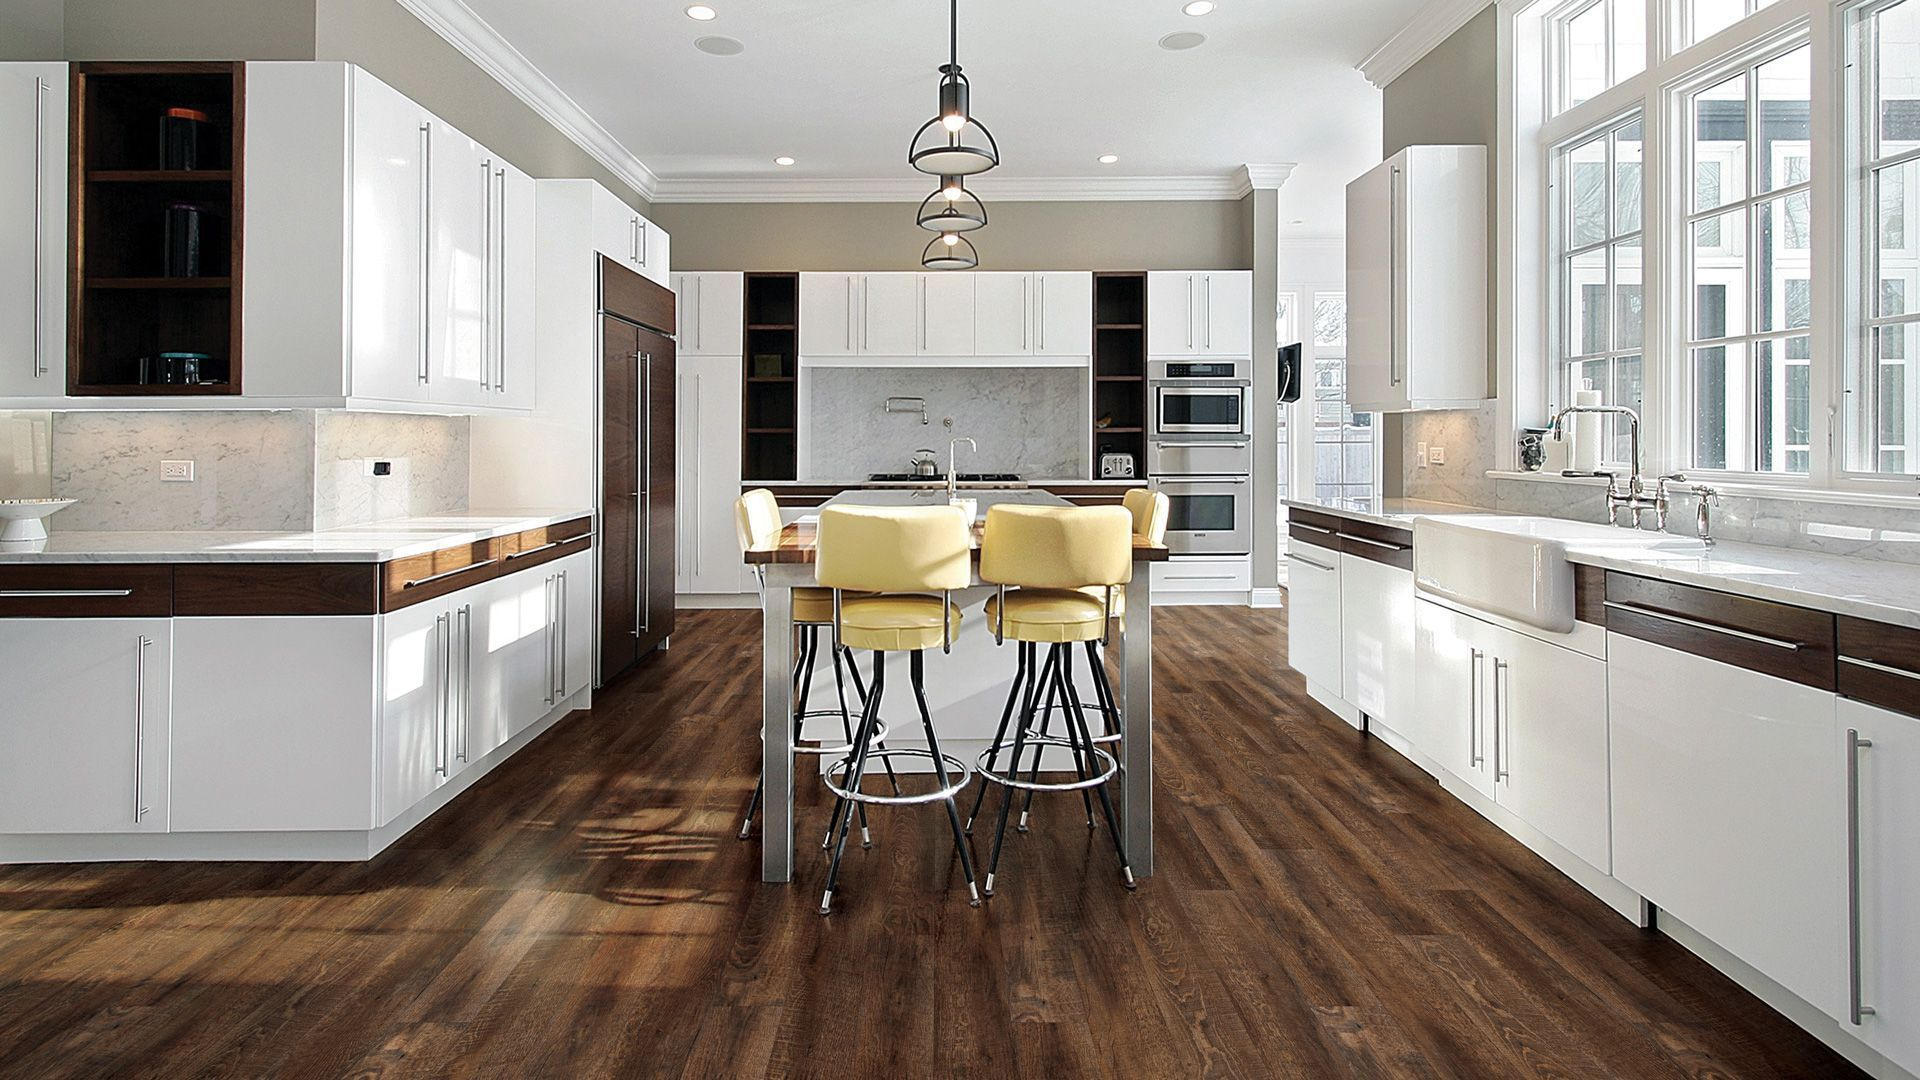 vinyl flooring trends 4 hot vinyl flooring ideas 2018 white modern kitchen luxury kitchen on kitchen remodel vinyl flooring id=19369